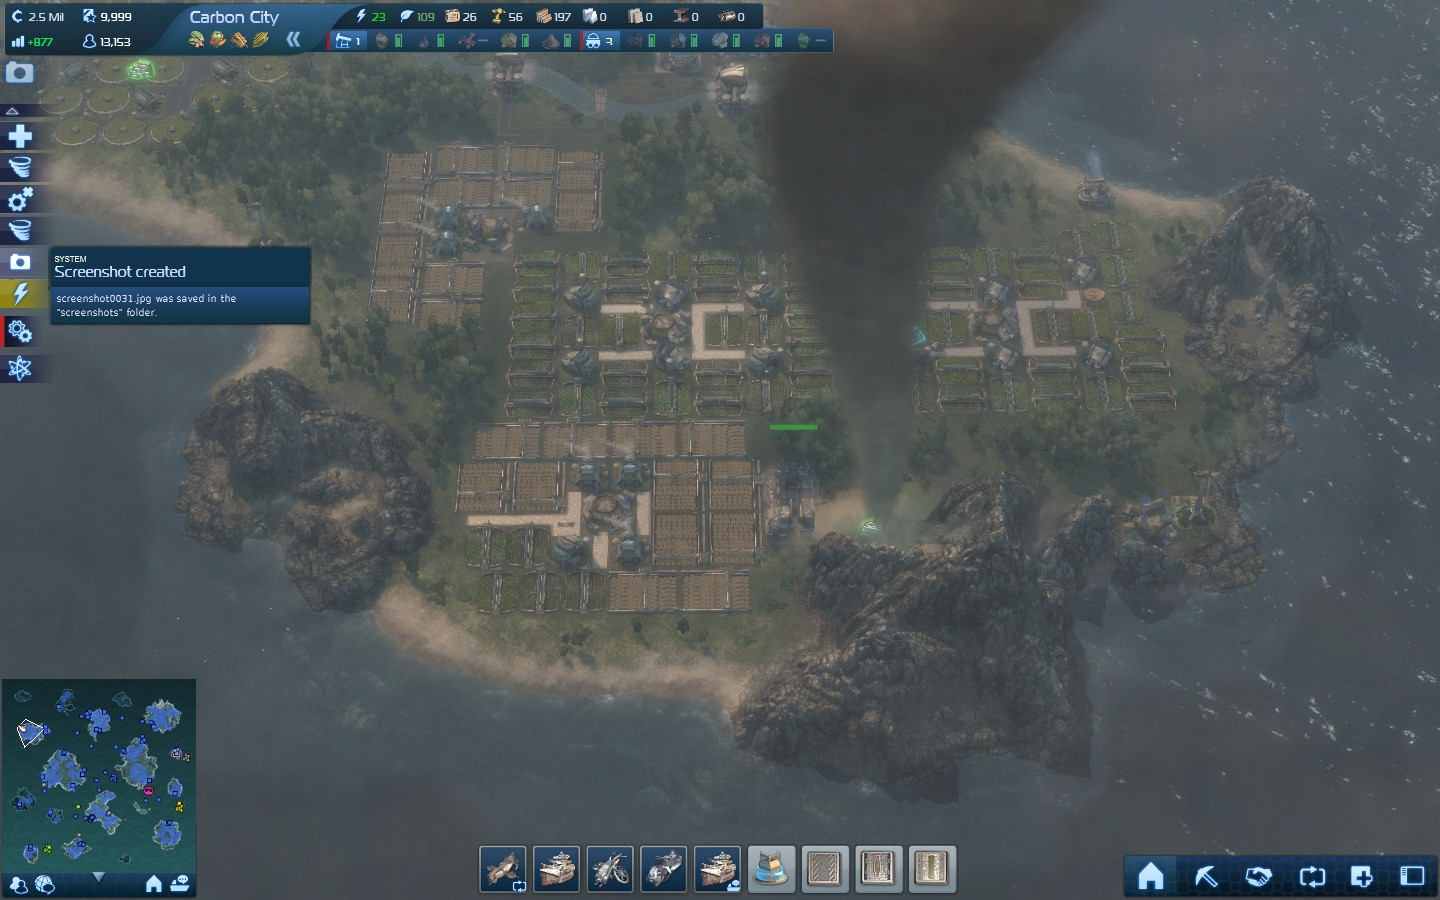 Disasters anno 2070 wiki fandom powered by wikia there are three kinds of disasters in anno 2070 city disasters environmental disasters and technological disasters on this page you will find an gumiabroncs